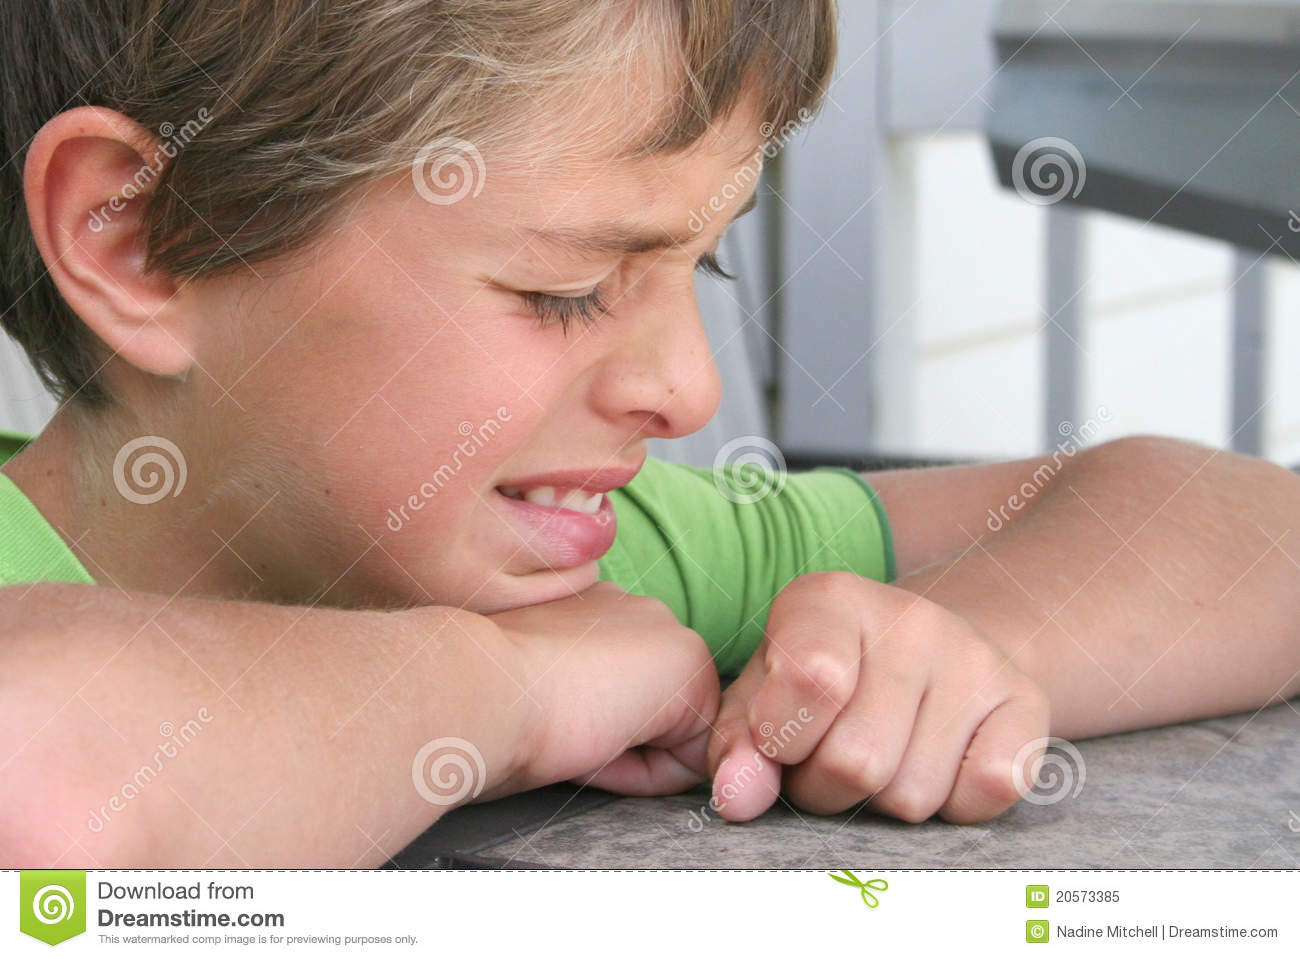 Young boy crying at a table